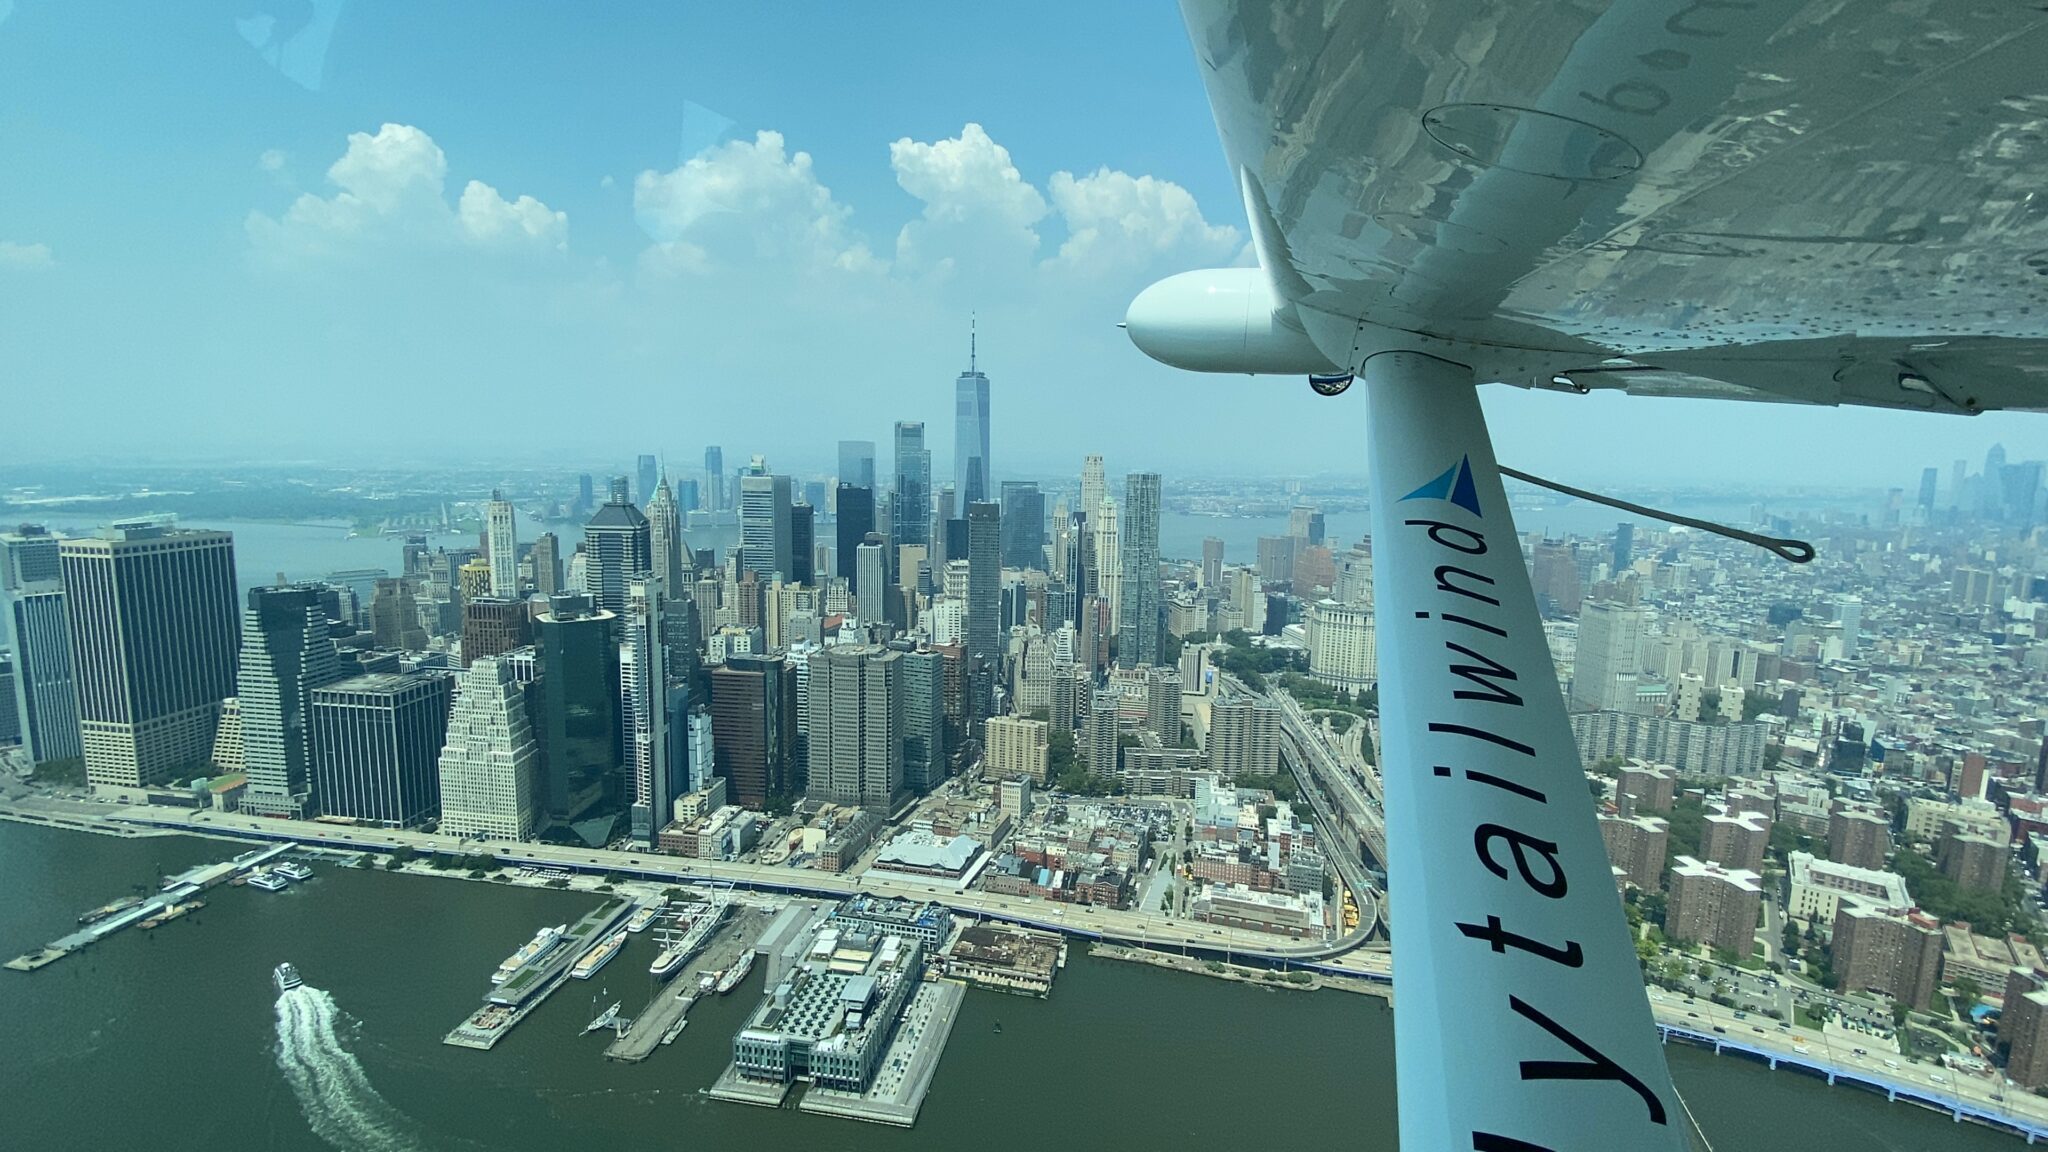 A glorious view from a Tailwind seaplane in flight over Manhattan